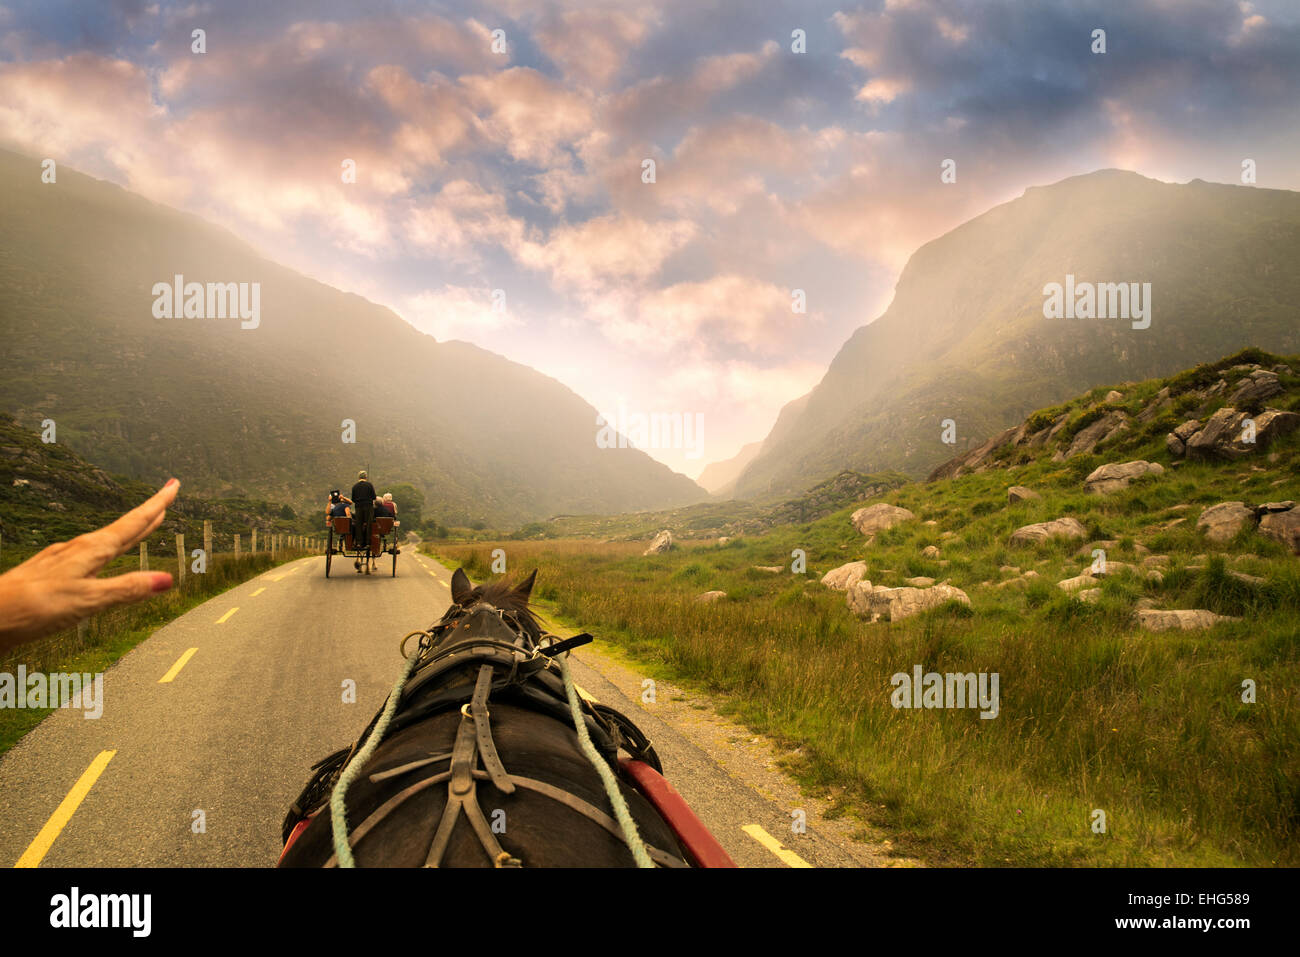 Jaunting à cheval sur la voiture avec la main montrant le chemin. Gap of Dunloe, Irlande Photo Stock